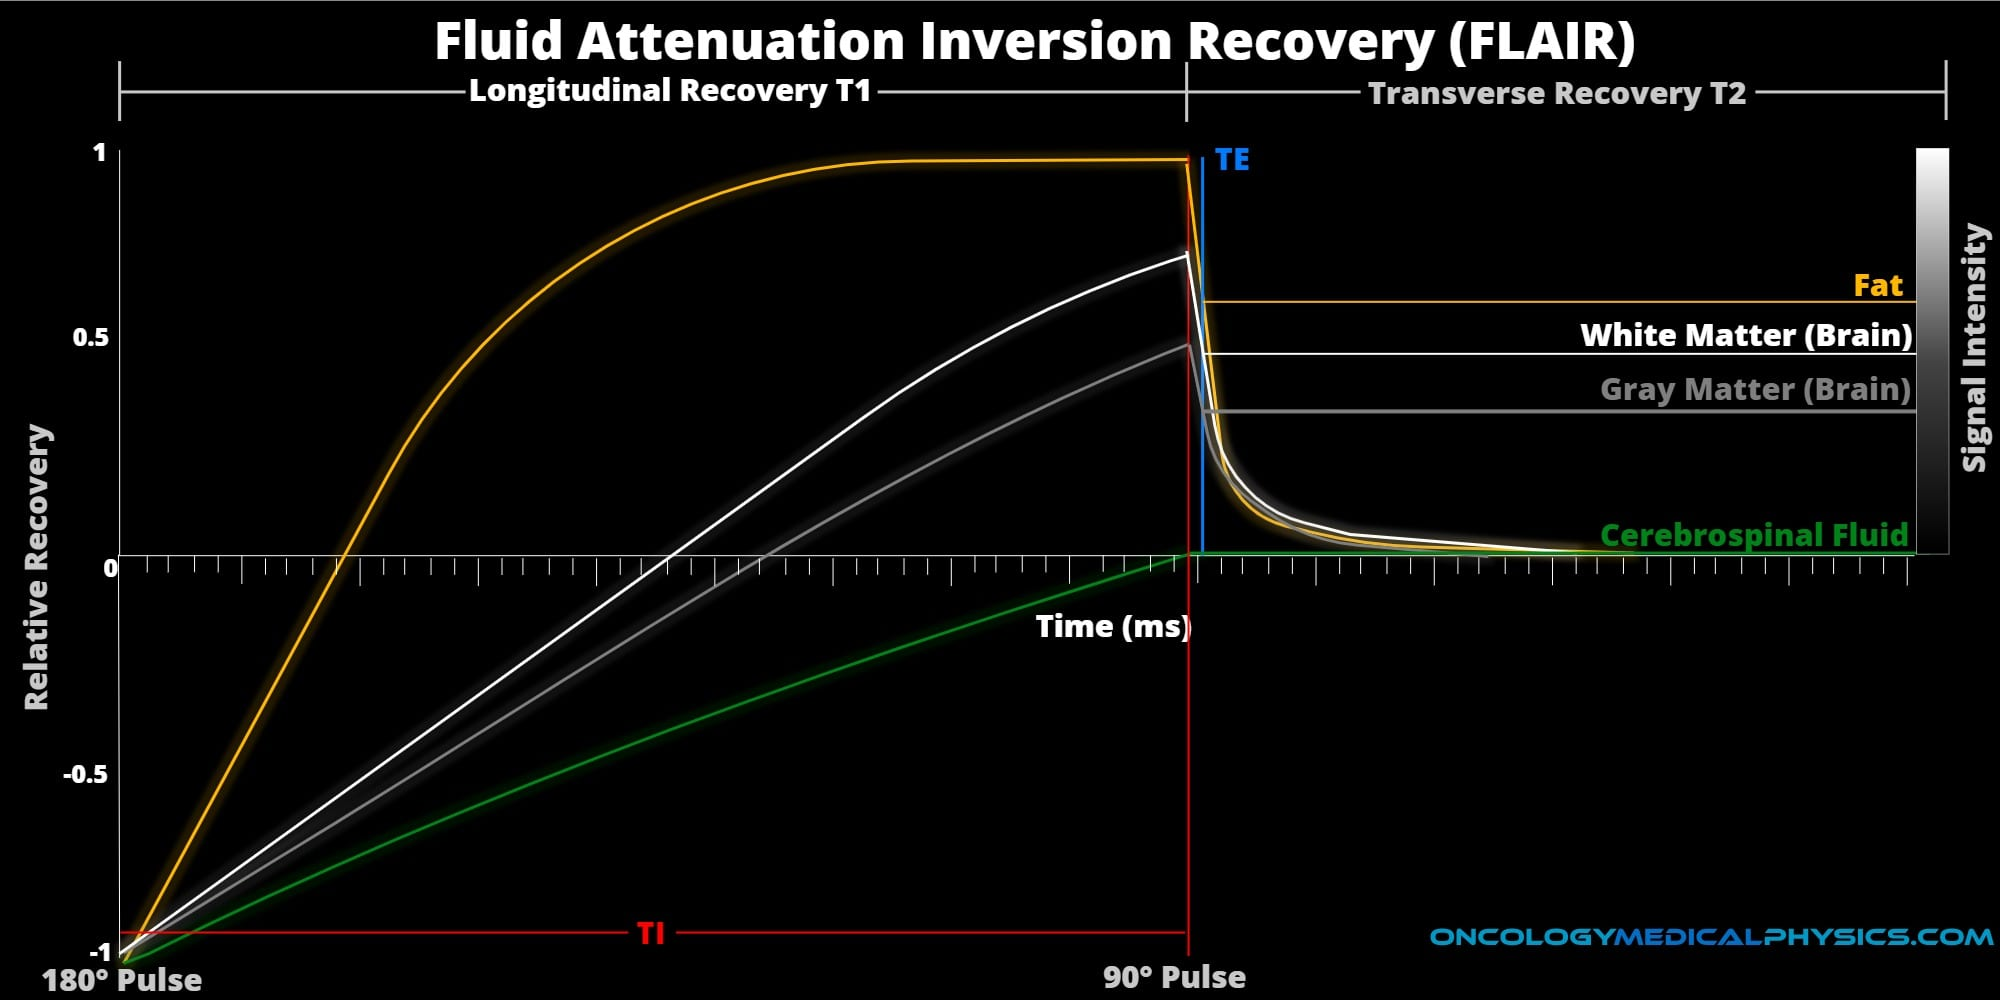 Operation and contrast of fluid attenuation inversion recovery (FLAIR) weighted MRI